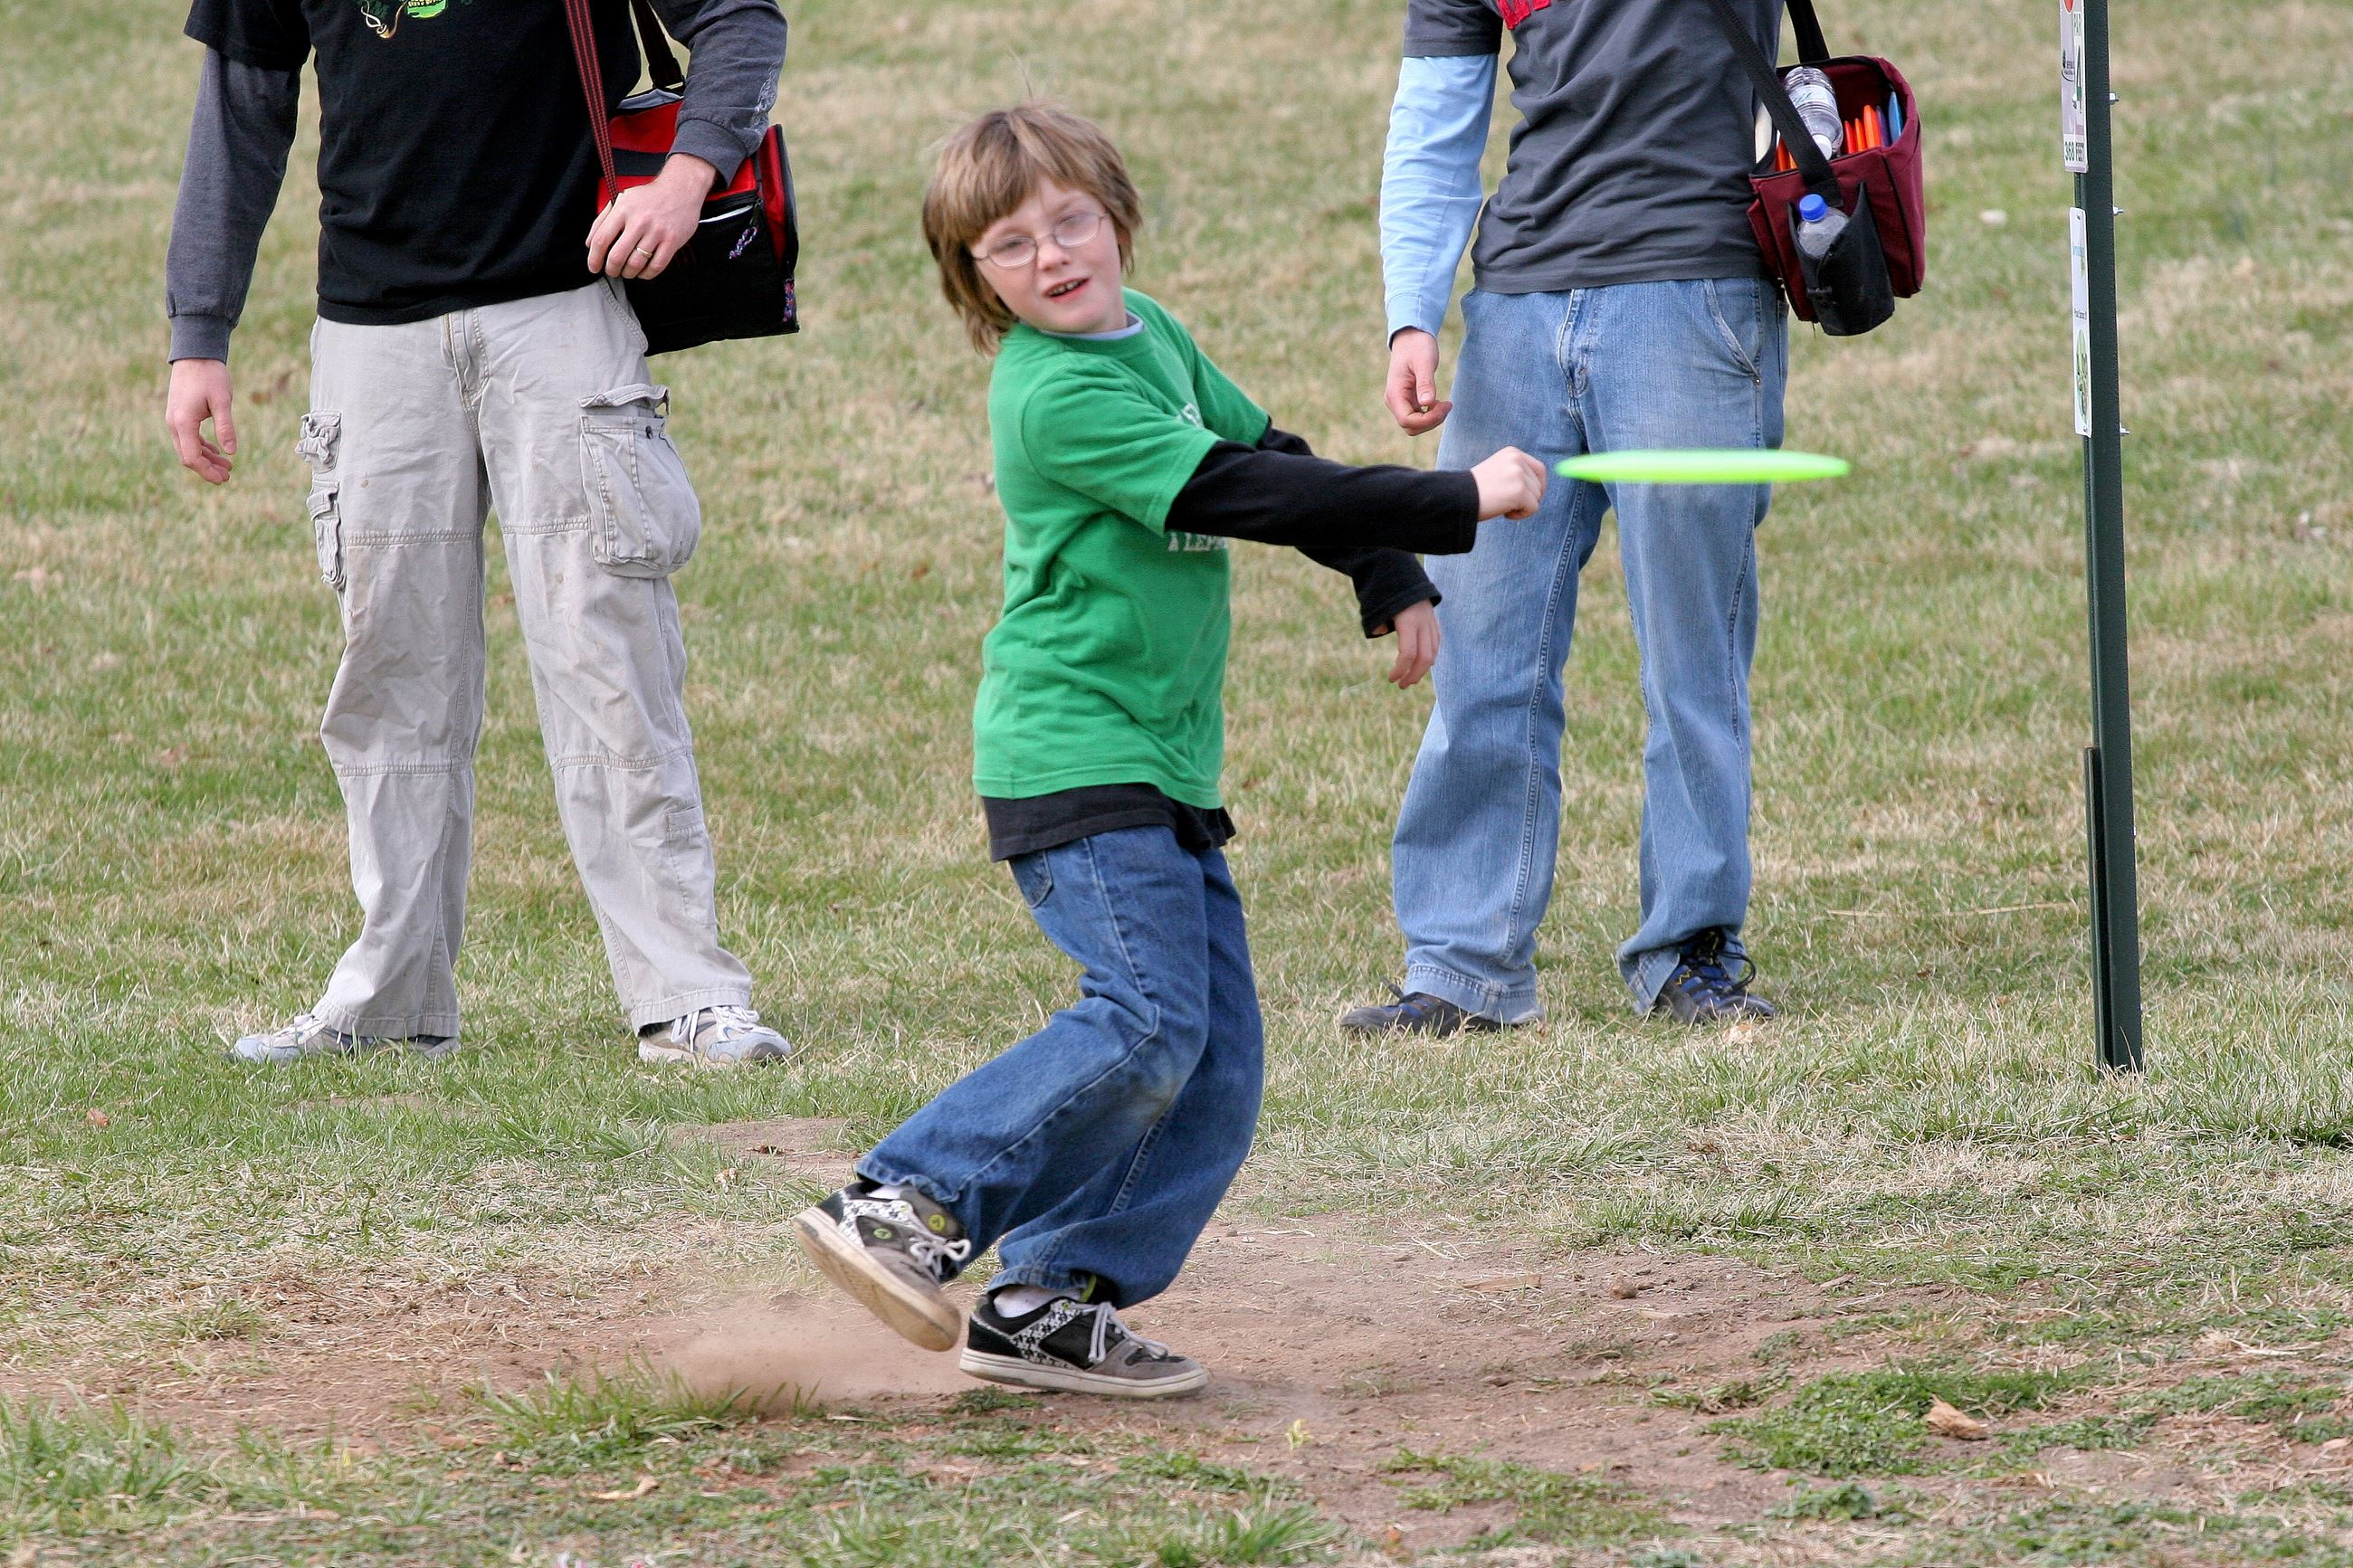 Child playing disc golf